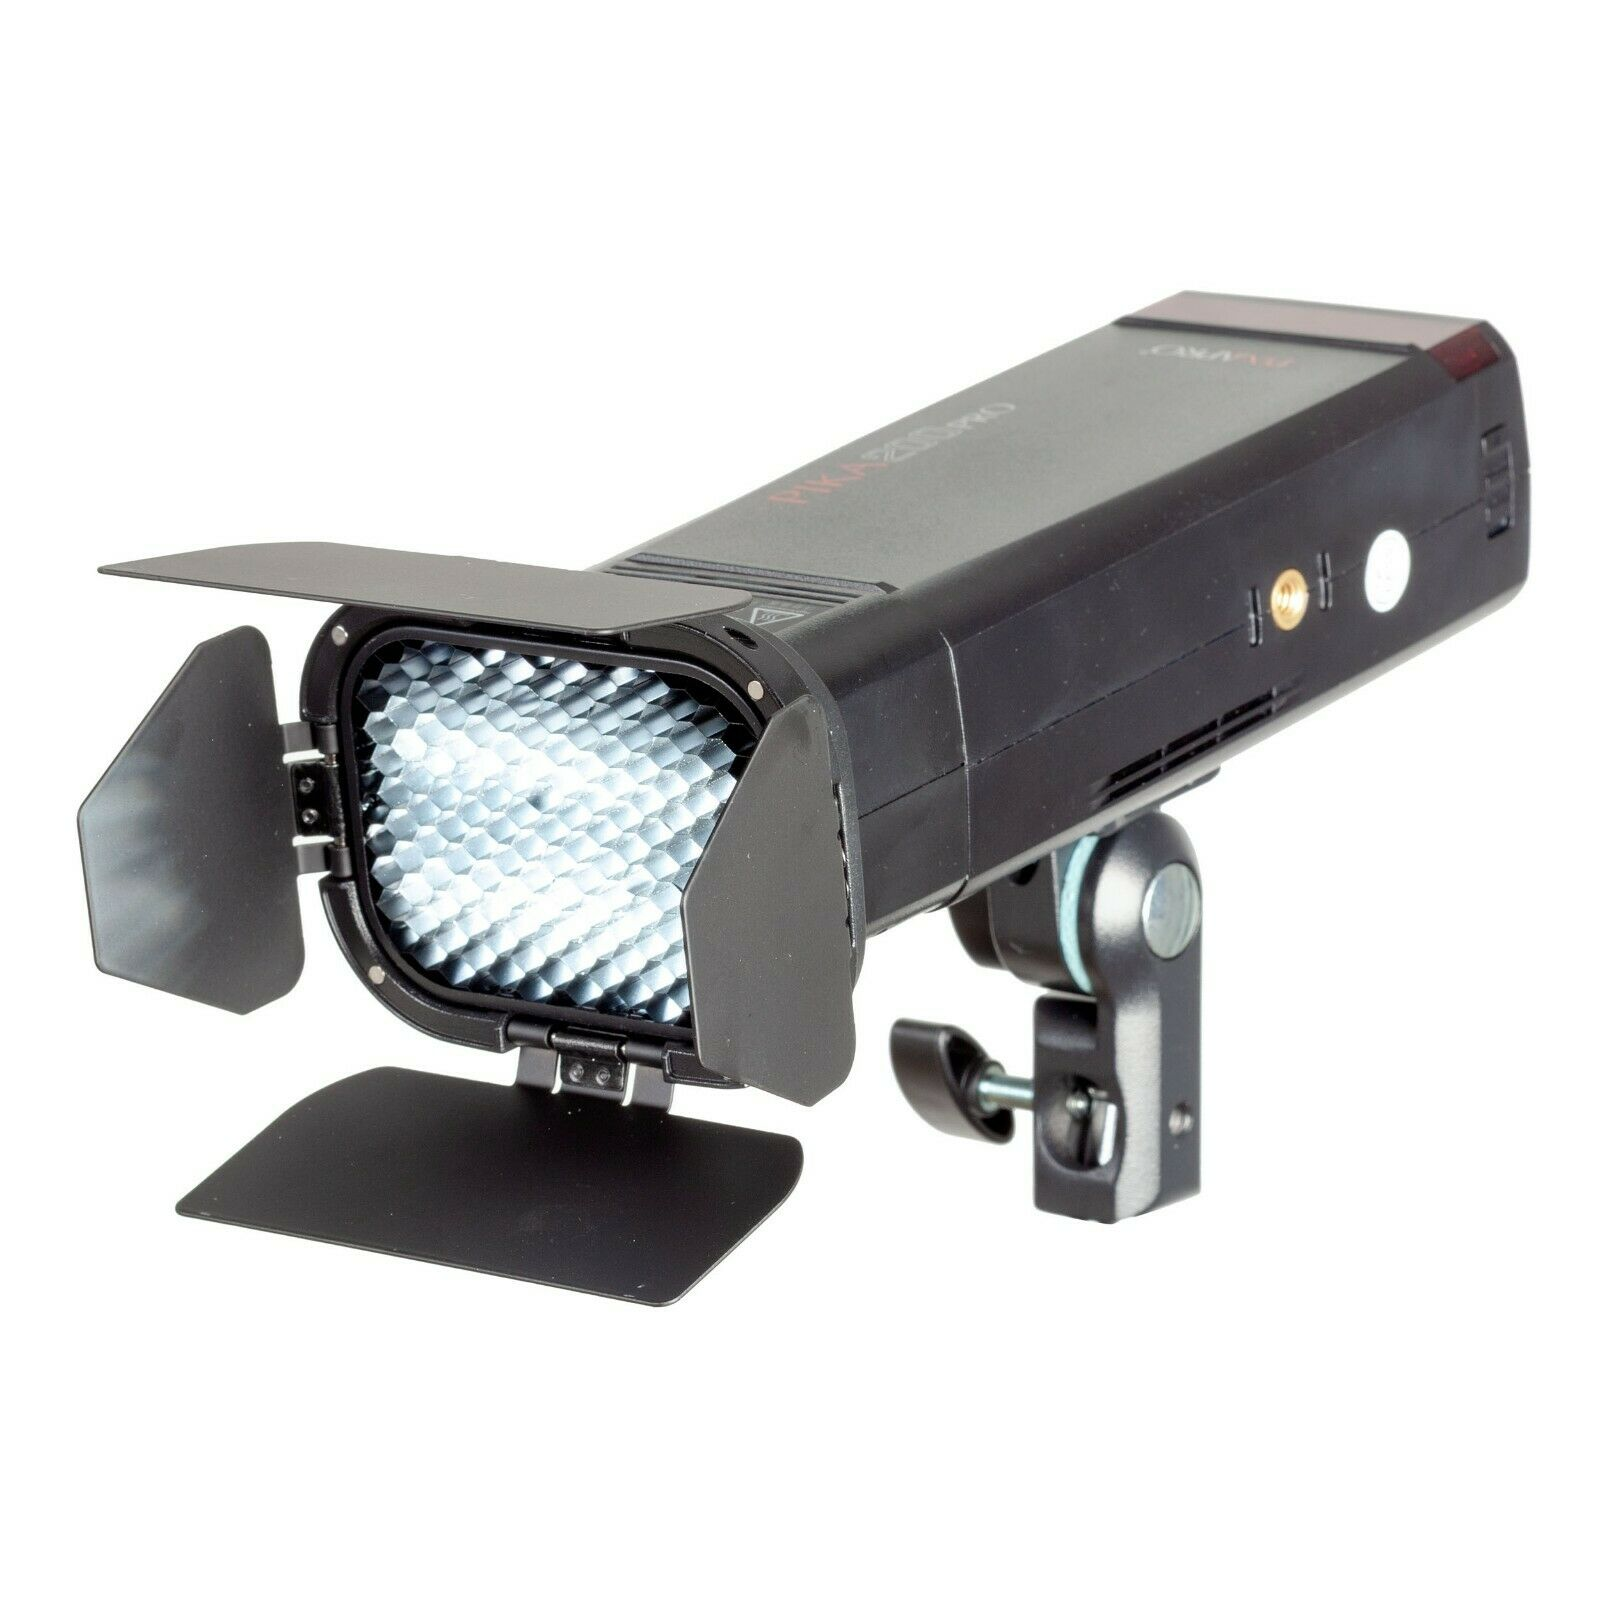 Iluminación Bowens Gemini 500 Pro Studio Flash Head 500 WS